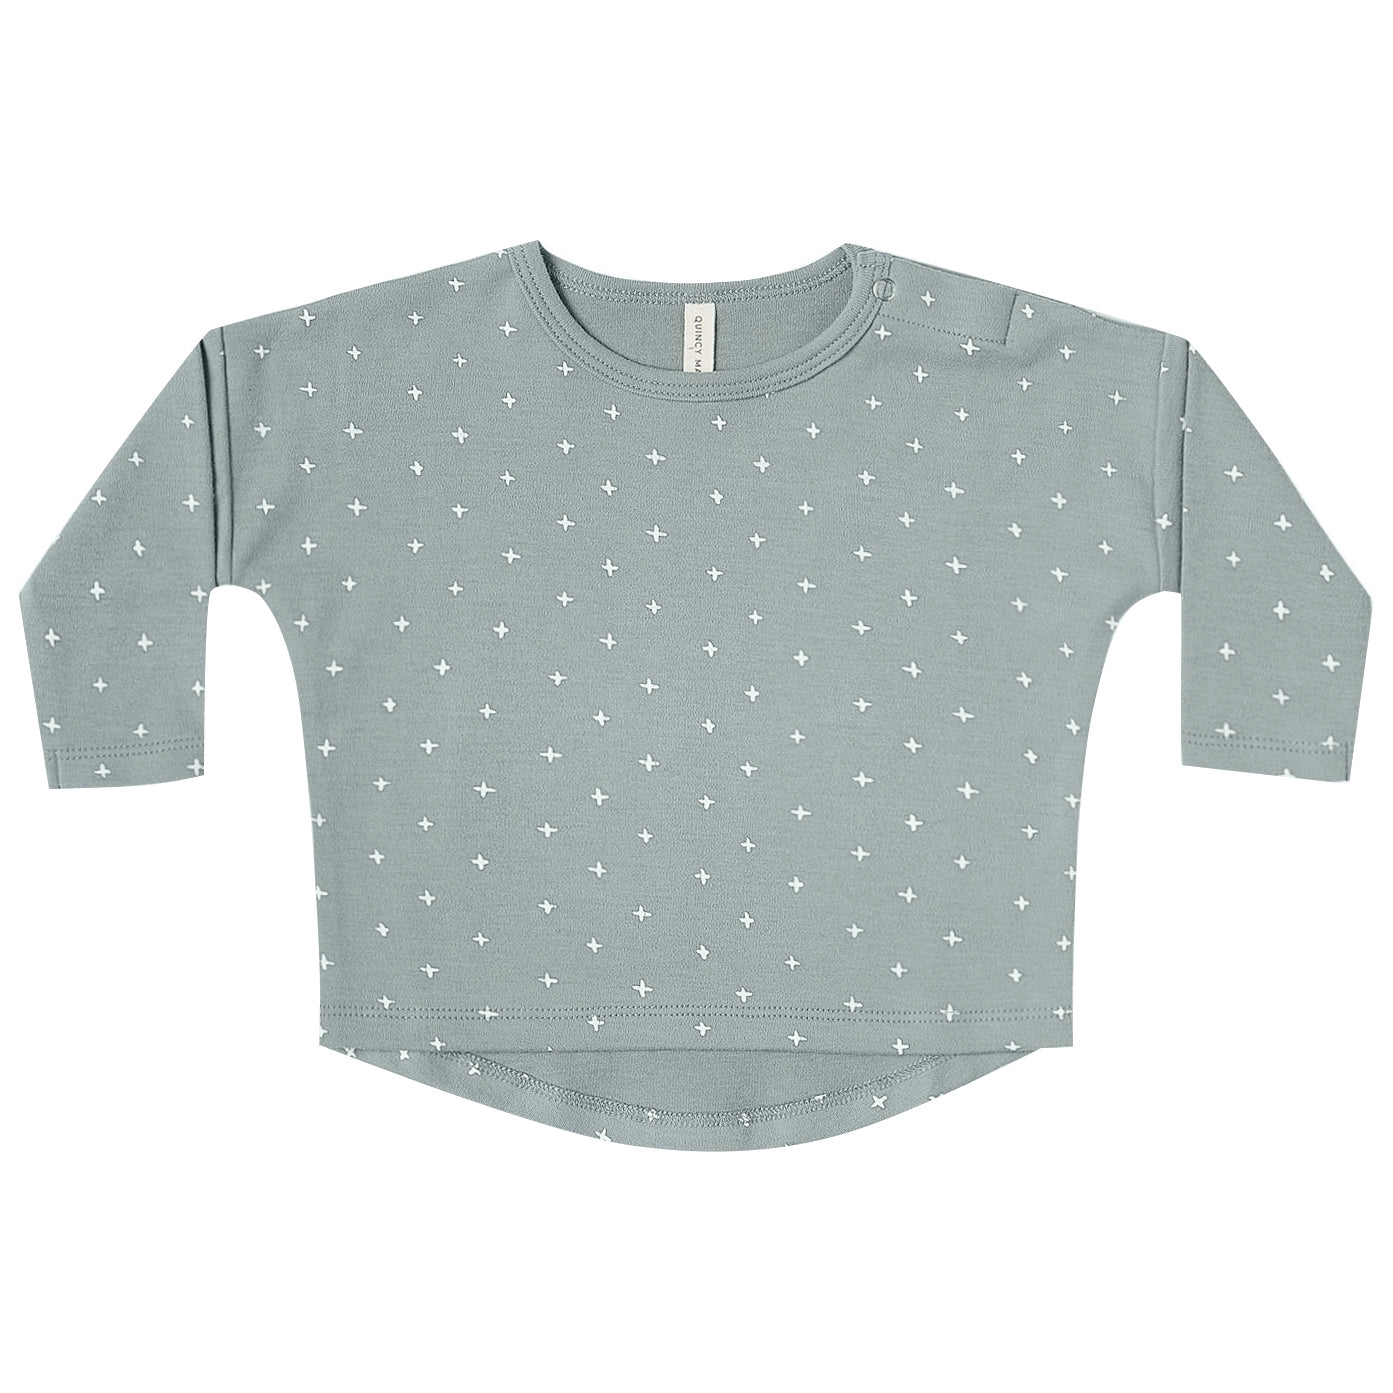 yoya, kids, baby, girls, boys, quincy mae, summer, lightweight, two piece, lounge, pajama, outfit, set